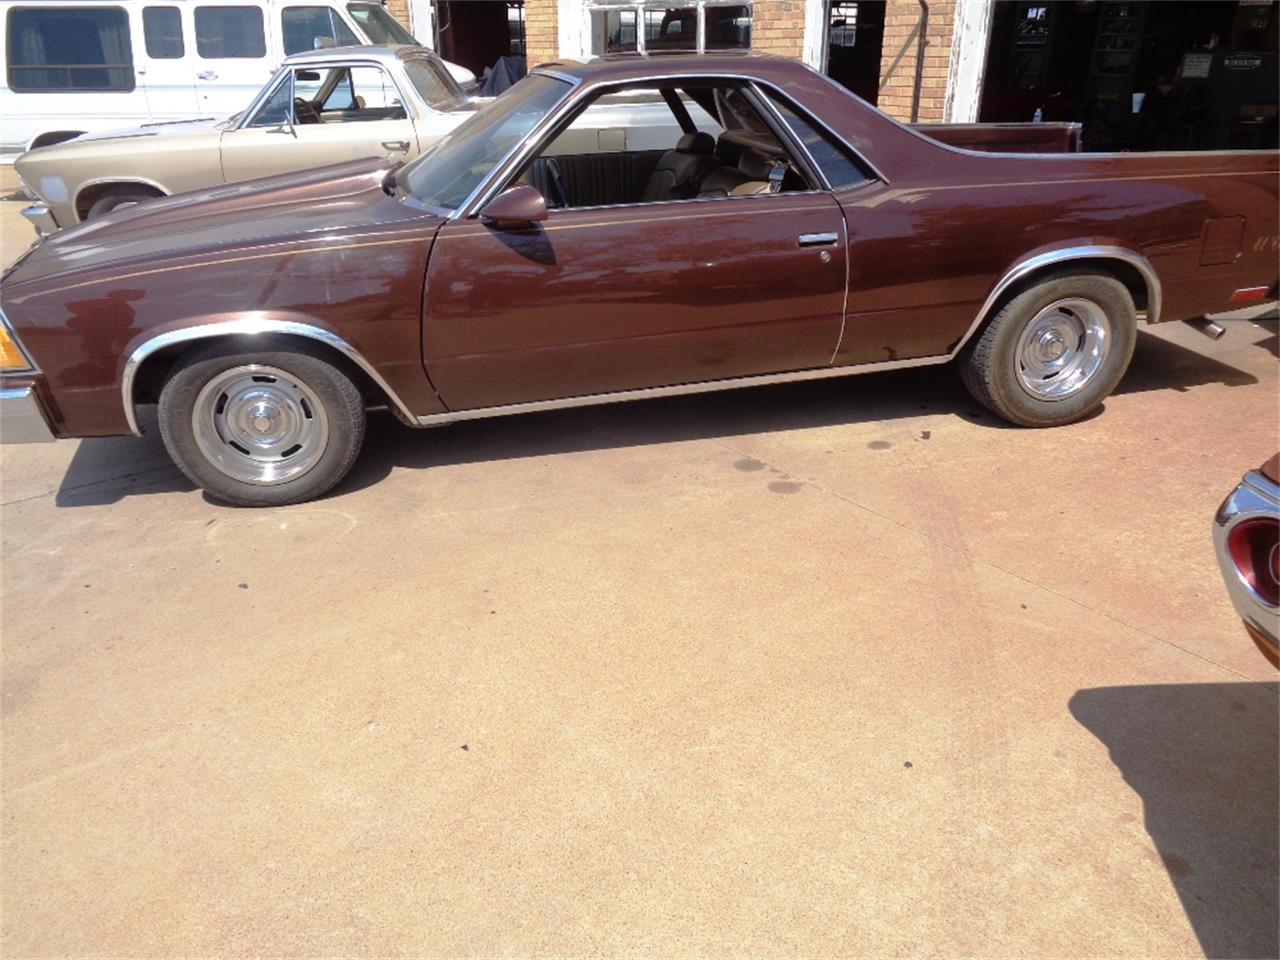 1980 Chevrolet El Camino (CC-1388437) for sale in GREAT BEND, Kansas